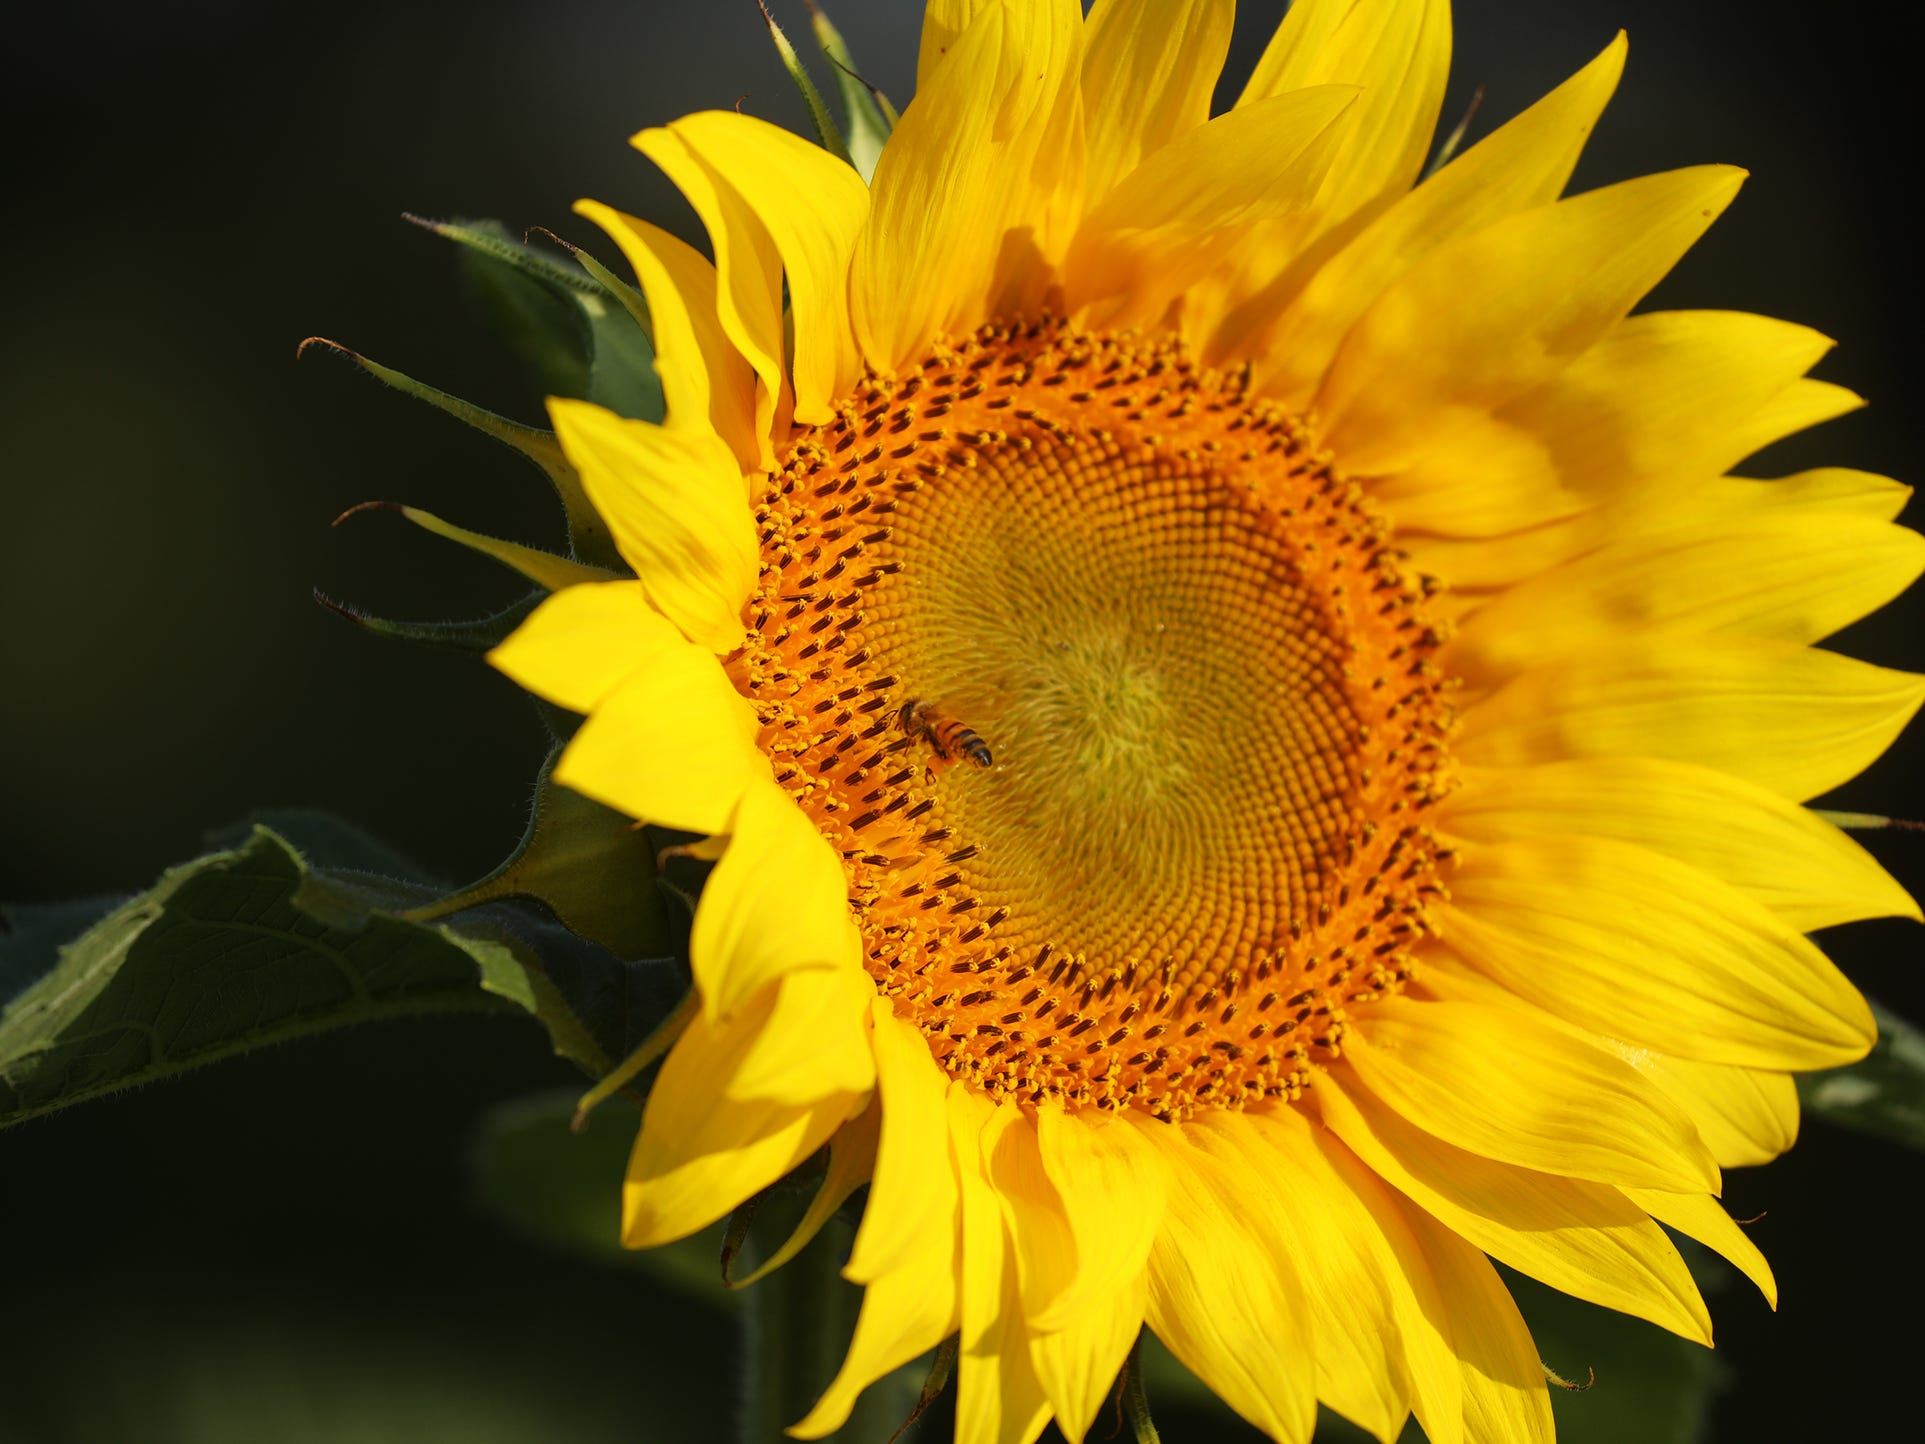 The sunflowers are in various stages of bloom.